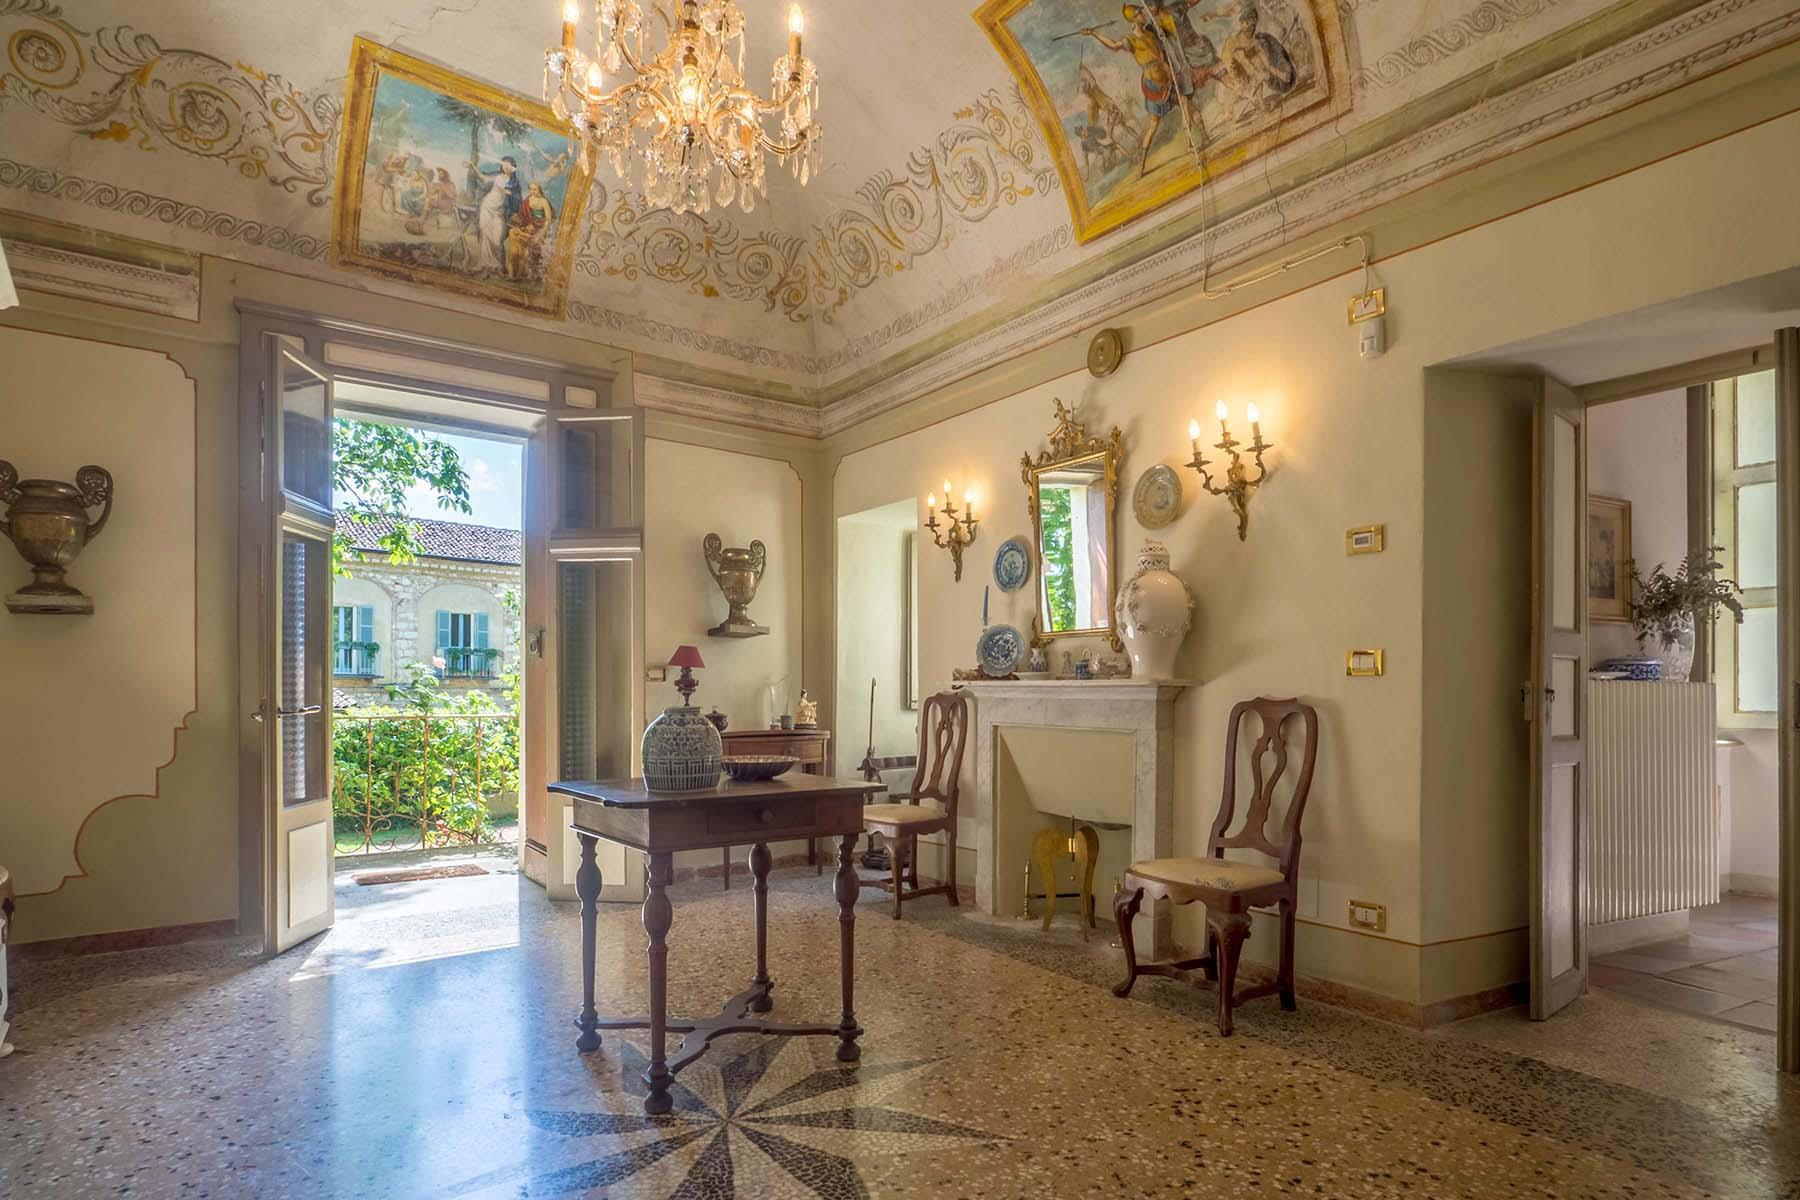 Enchanting historical villa in the heart of the Monferrato region - 6